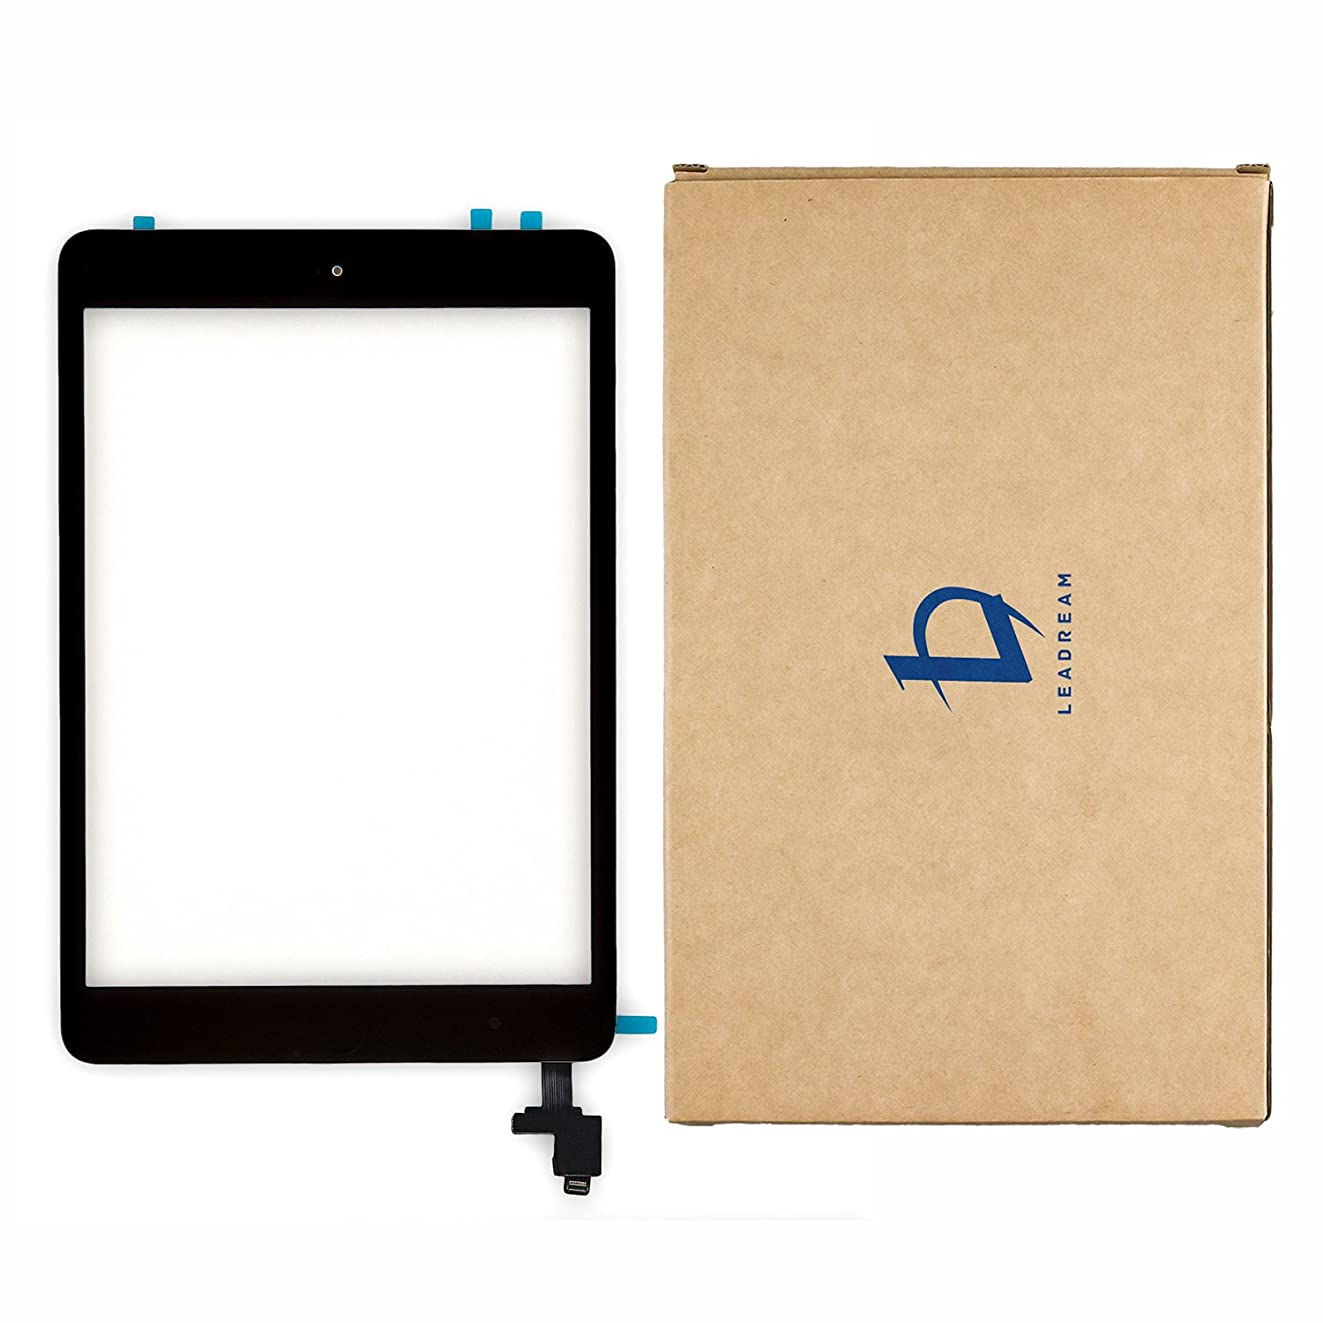 Glass Screen Digitizer Complete Full Assembly for iPad Mini & Mini 2 with IC Chip, Home Button, OEM Adhesive-Black